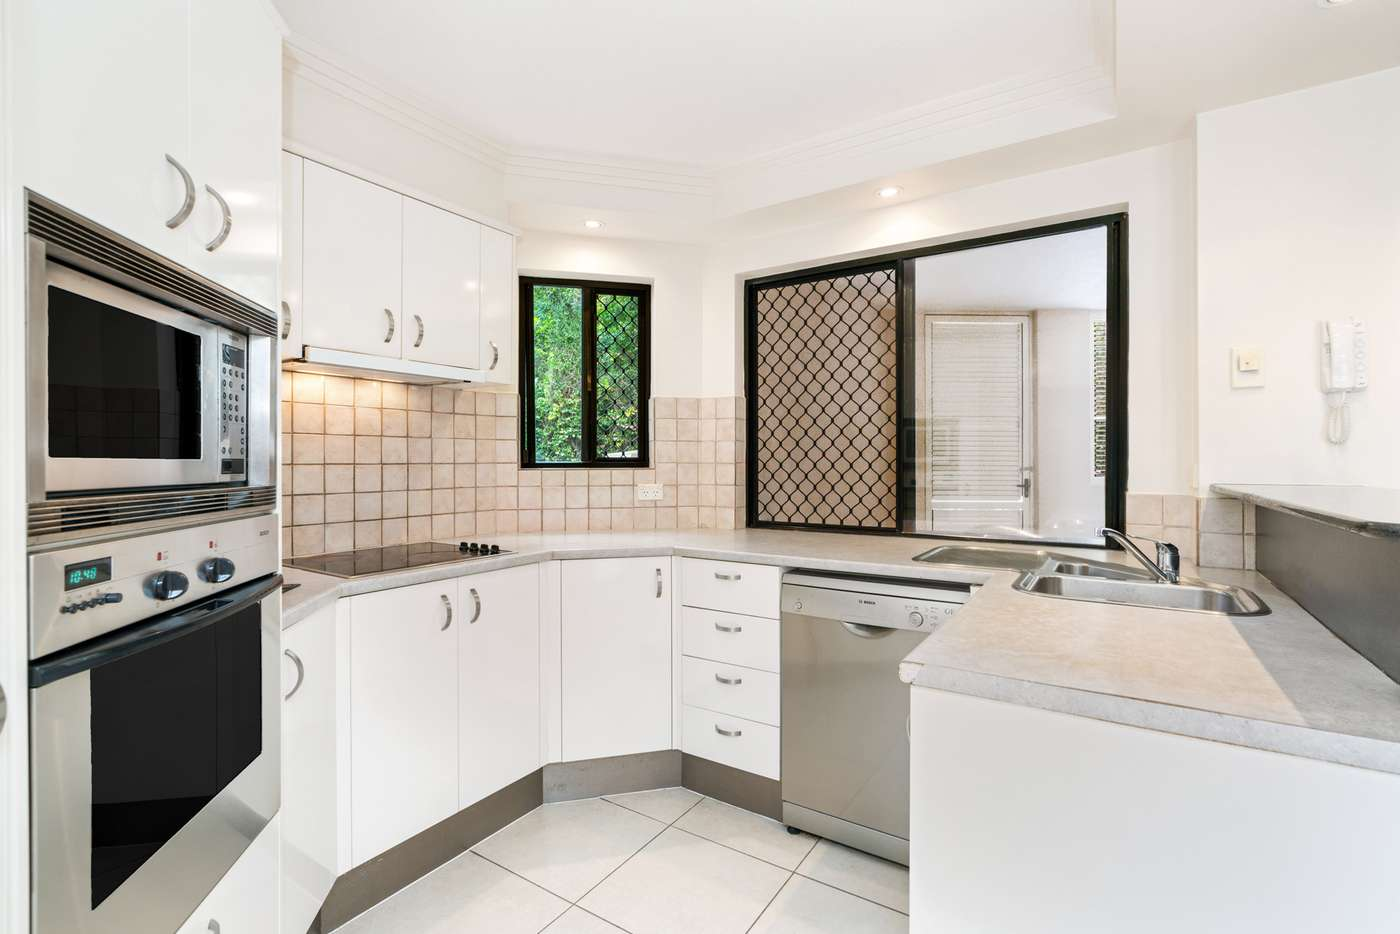 Sixth view of Homely apartment listing, 1/523 Coronation Drive, Toowong QLD 4066